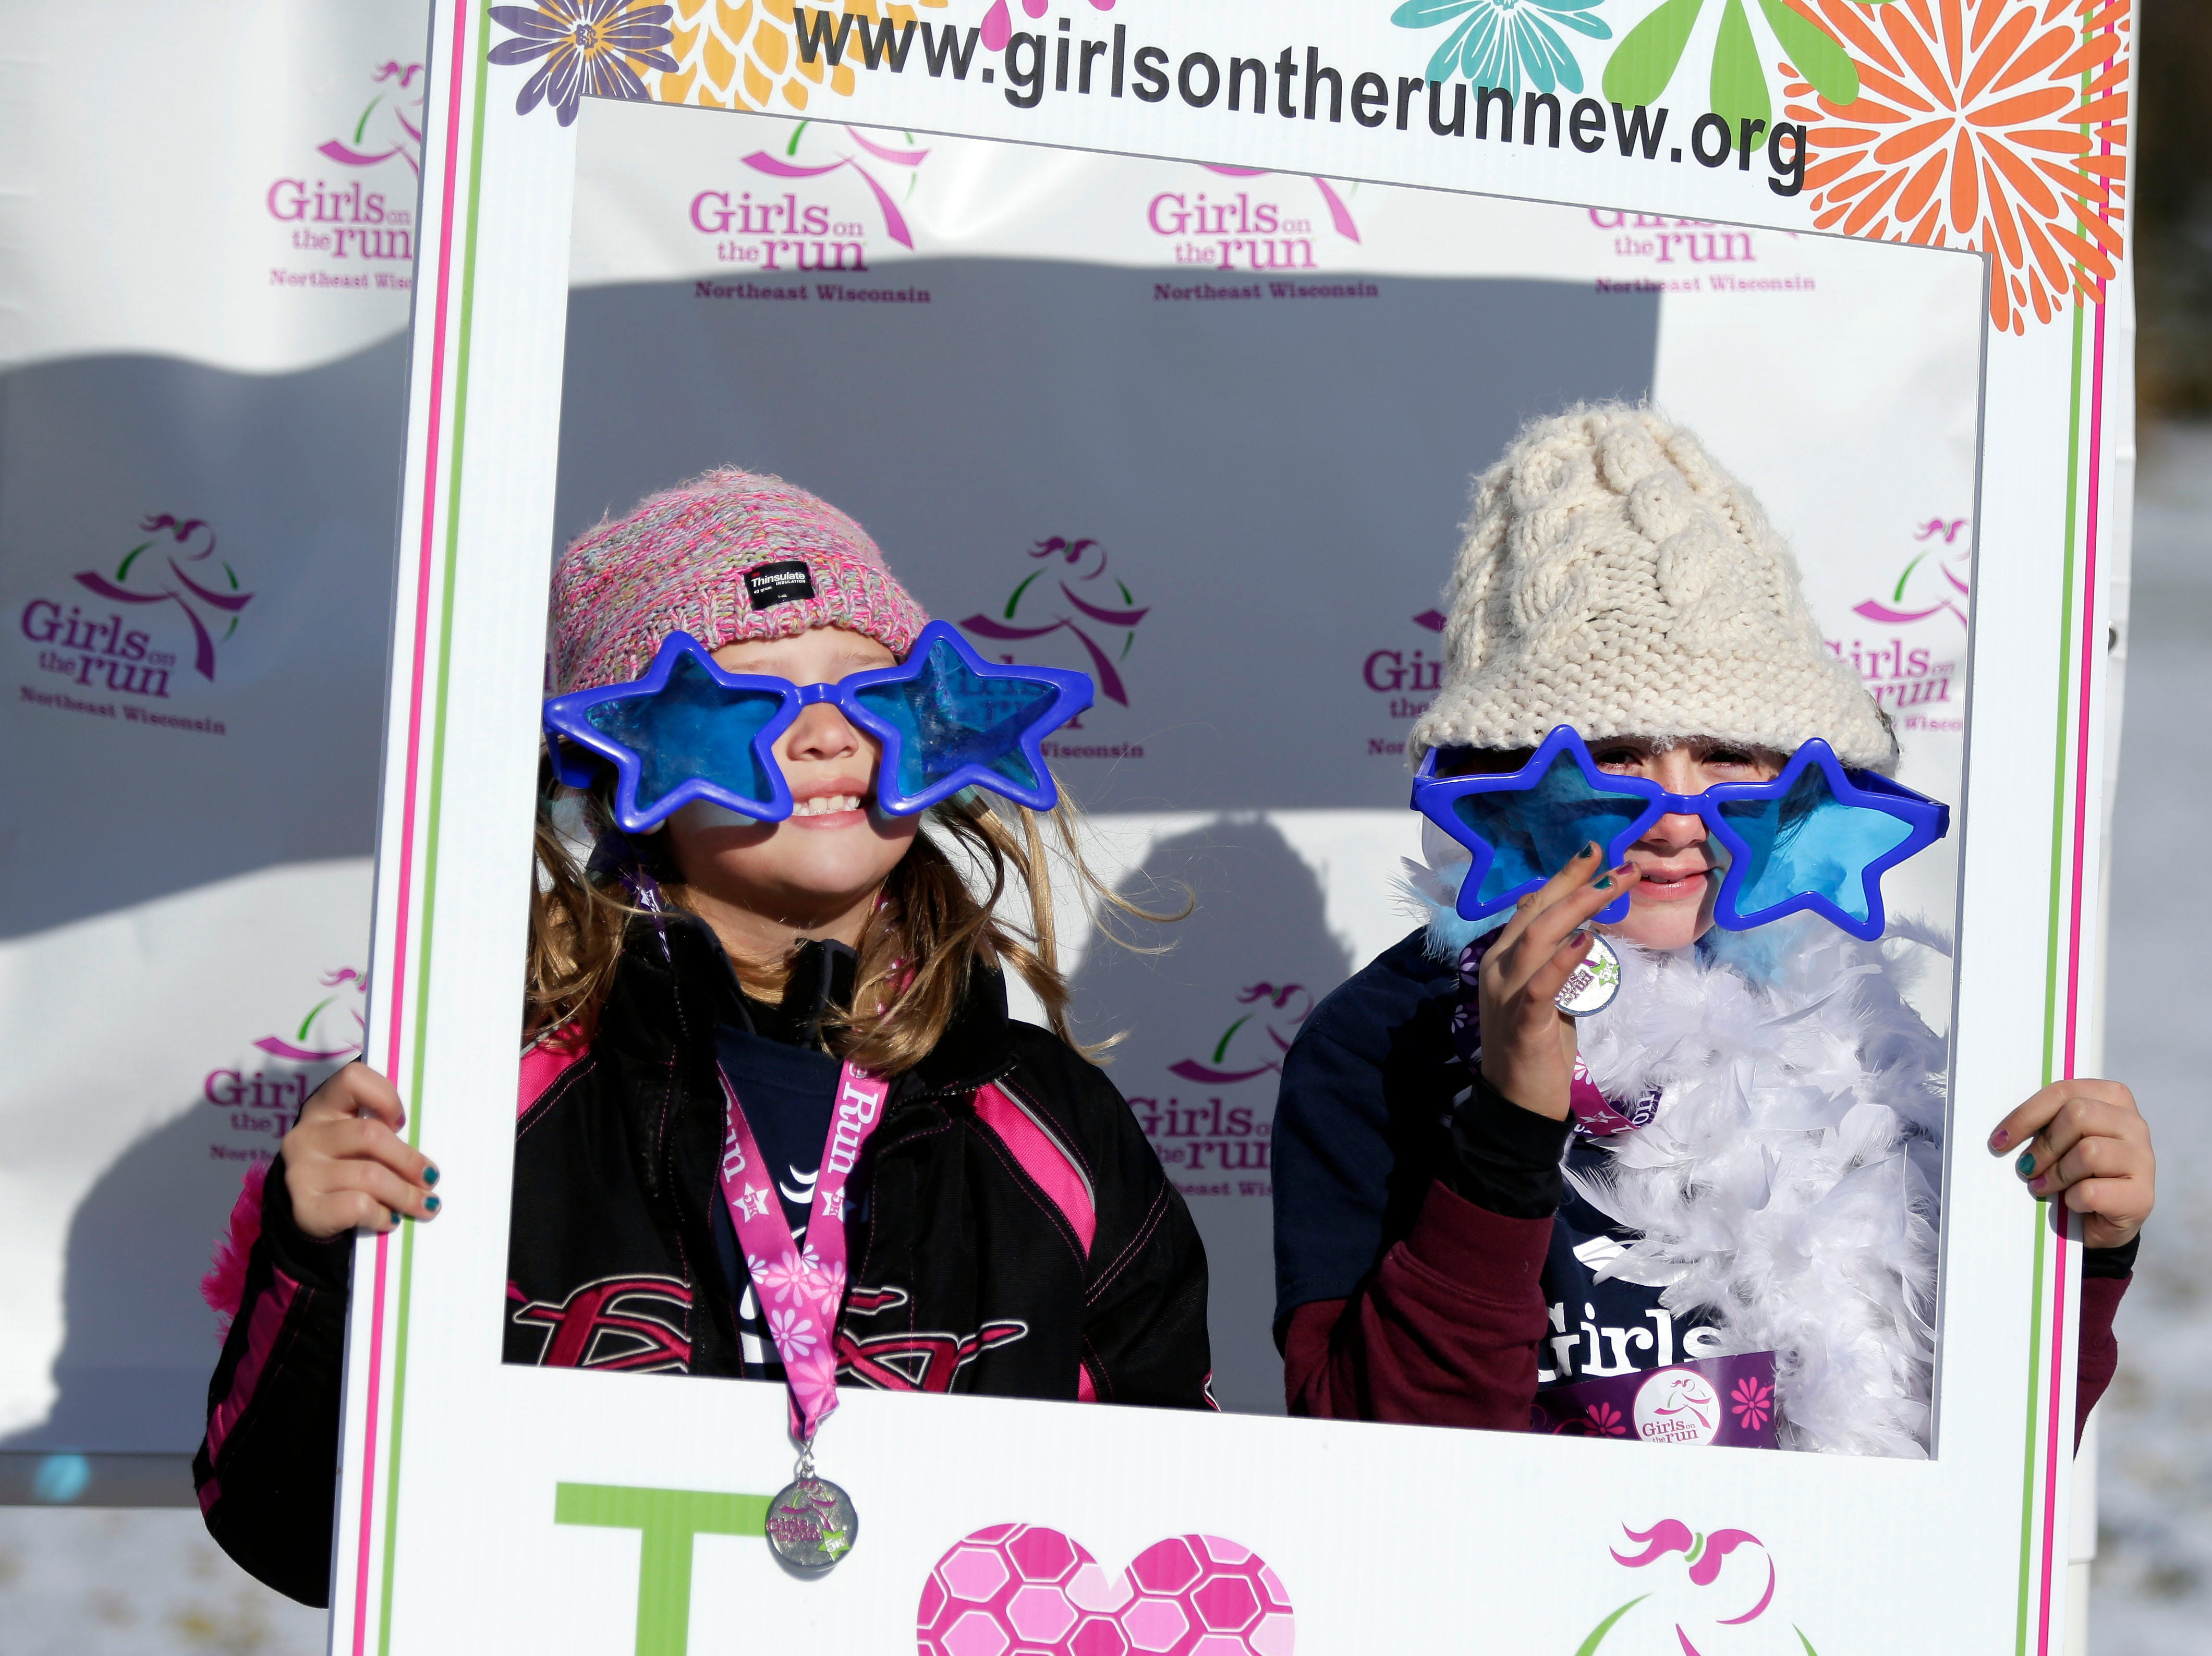 Mckenna Erickson, left, Isabella Theel, pose for a photo following the Girls on the Run Celebration 5K Saturday, November 10, 2018, at FVTC in Appleton, Wis. The event completes a 10-week program teaching life skills to inspire and empower girls.